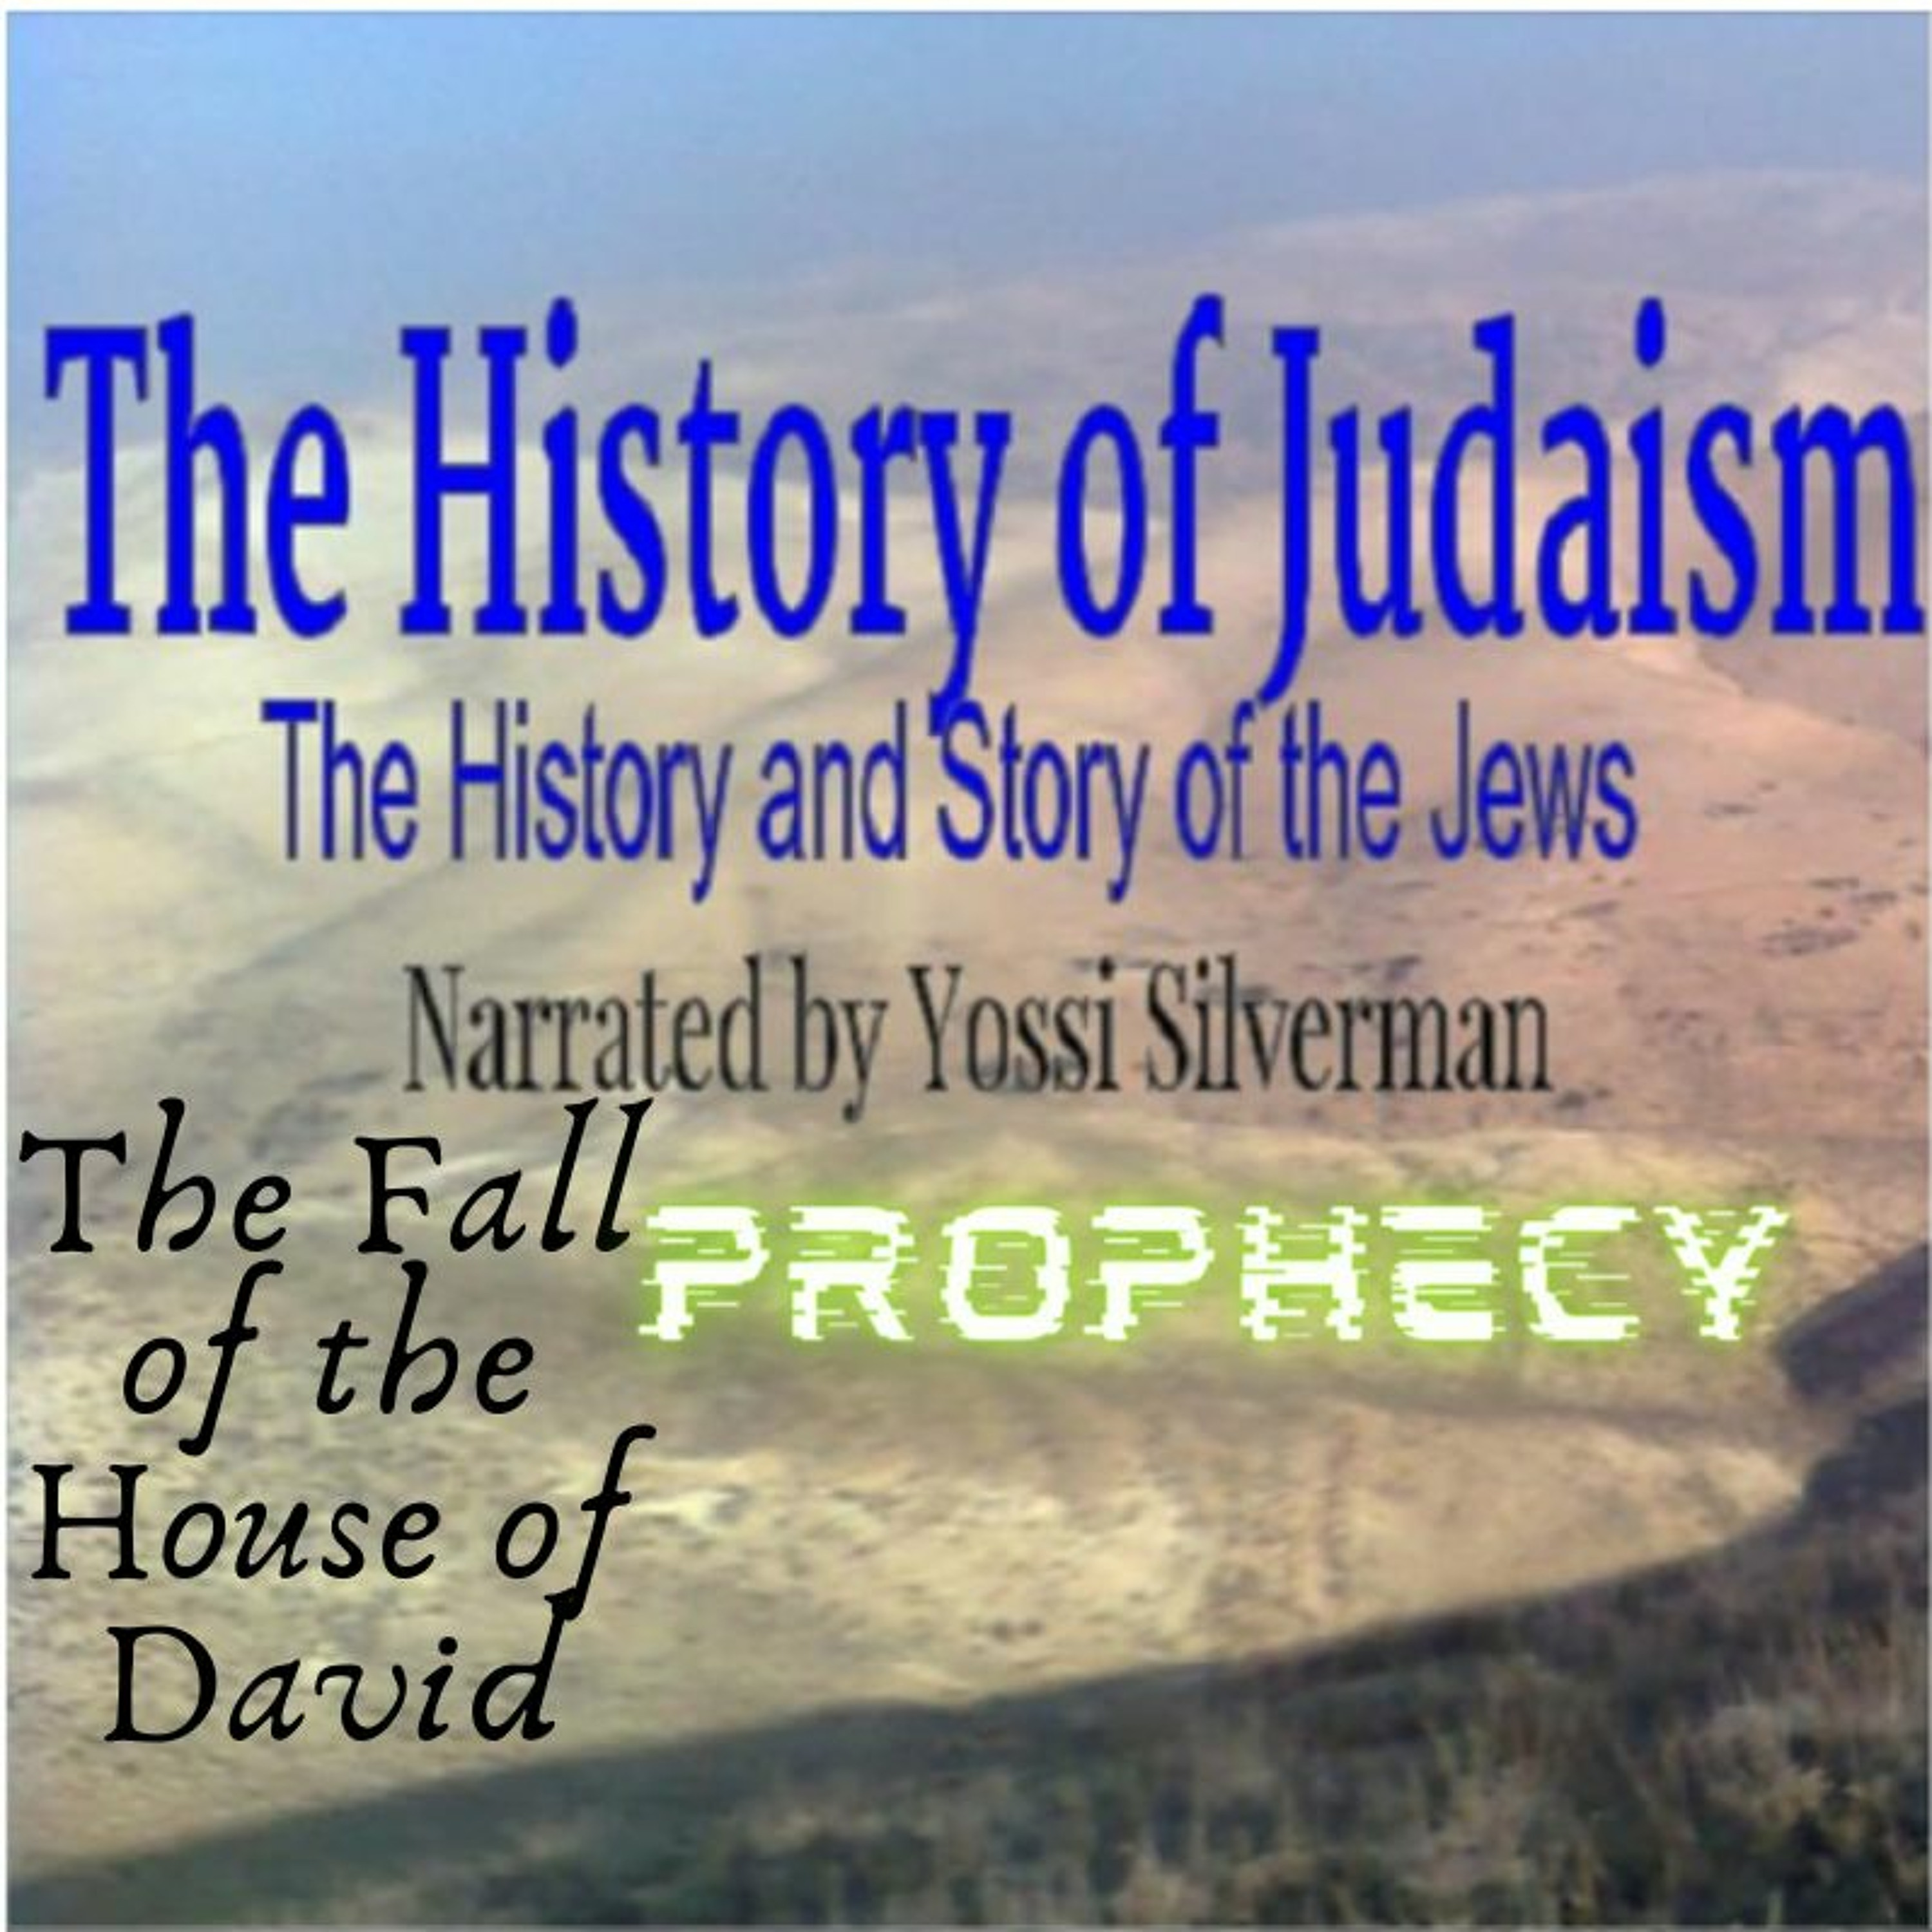 12. The Fall of the House of David: Prophecy